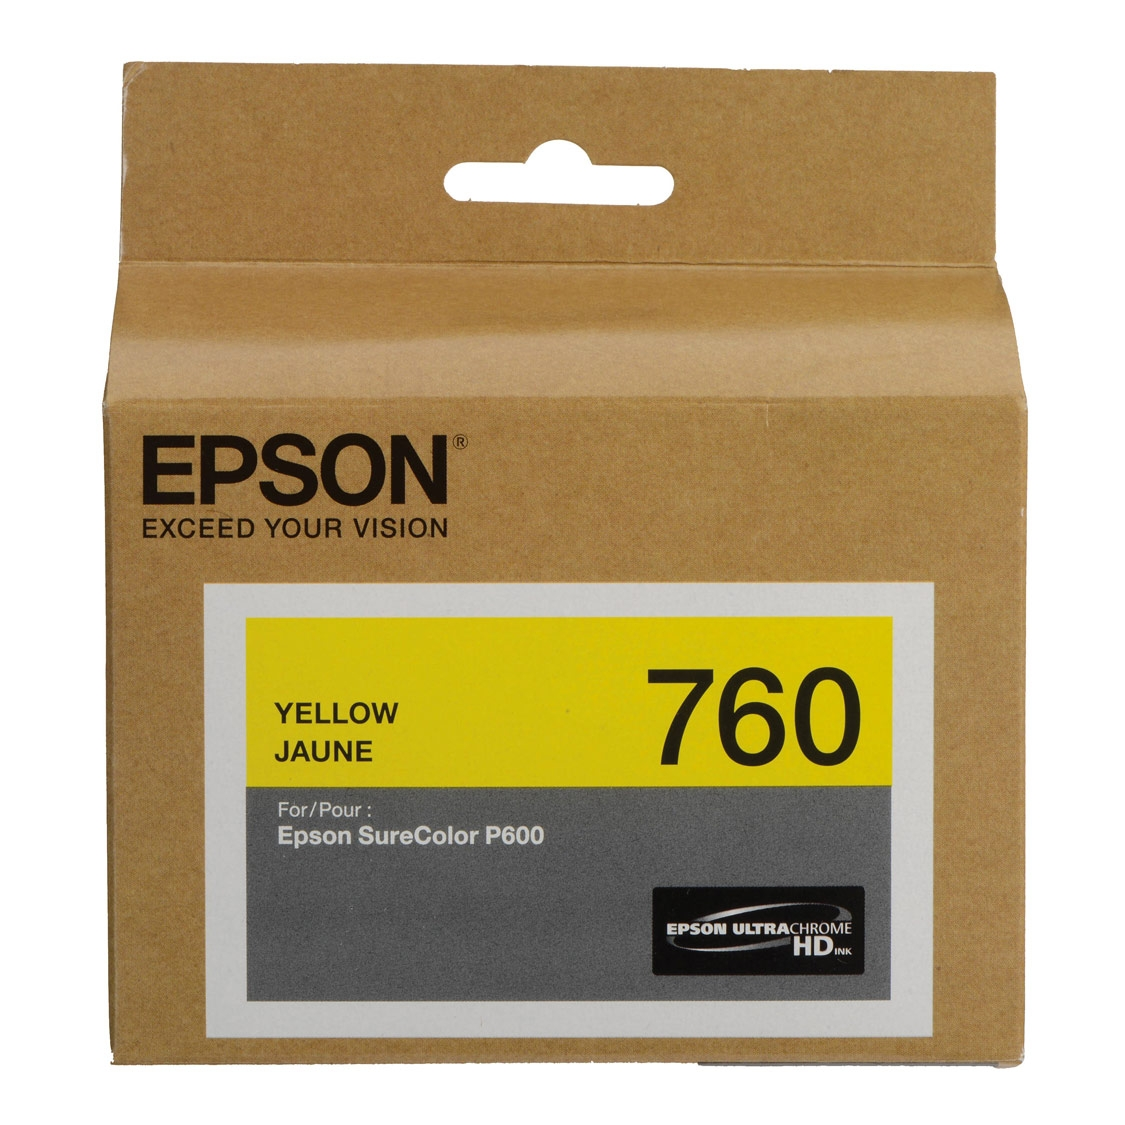 Epson Yellow Cartridge for P600 (T760420)